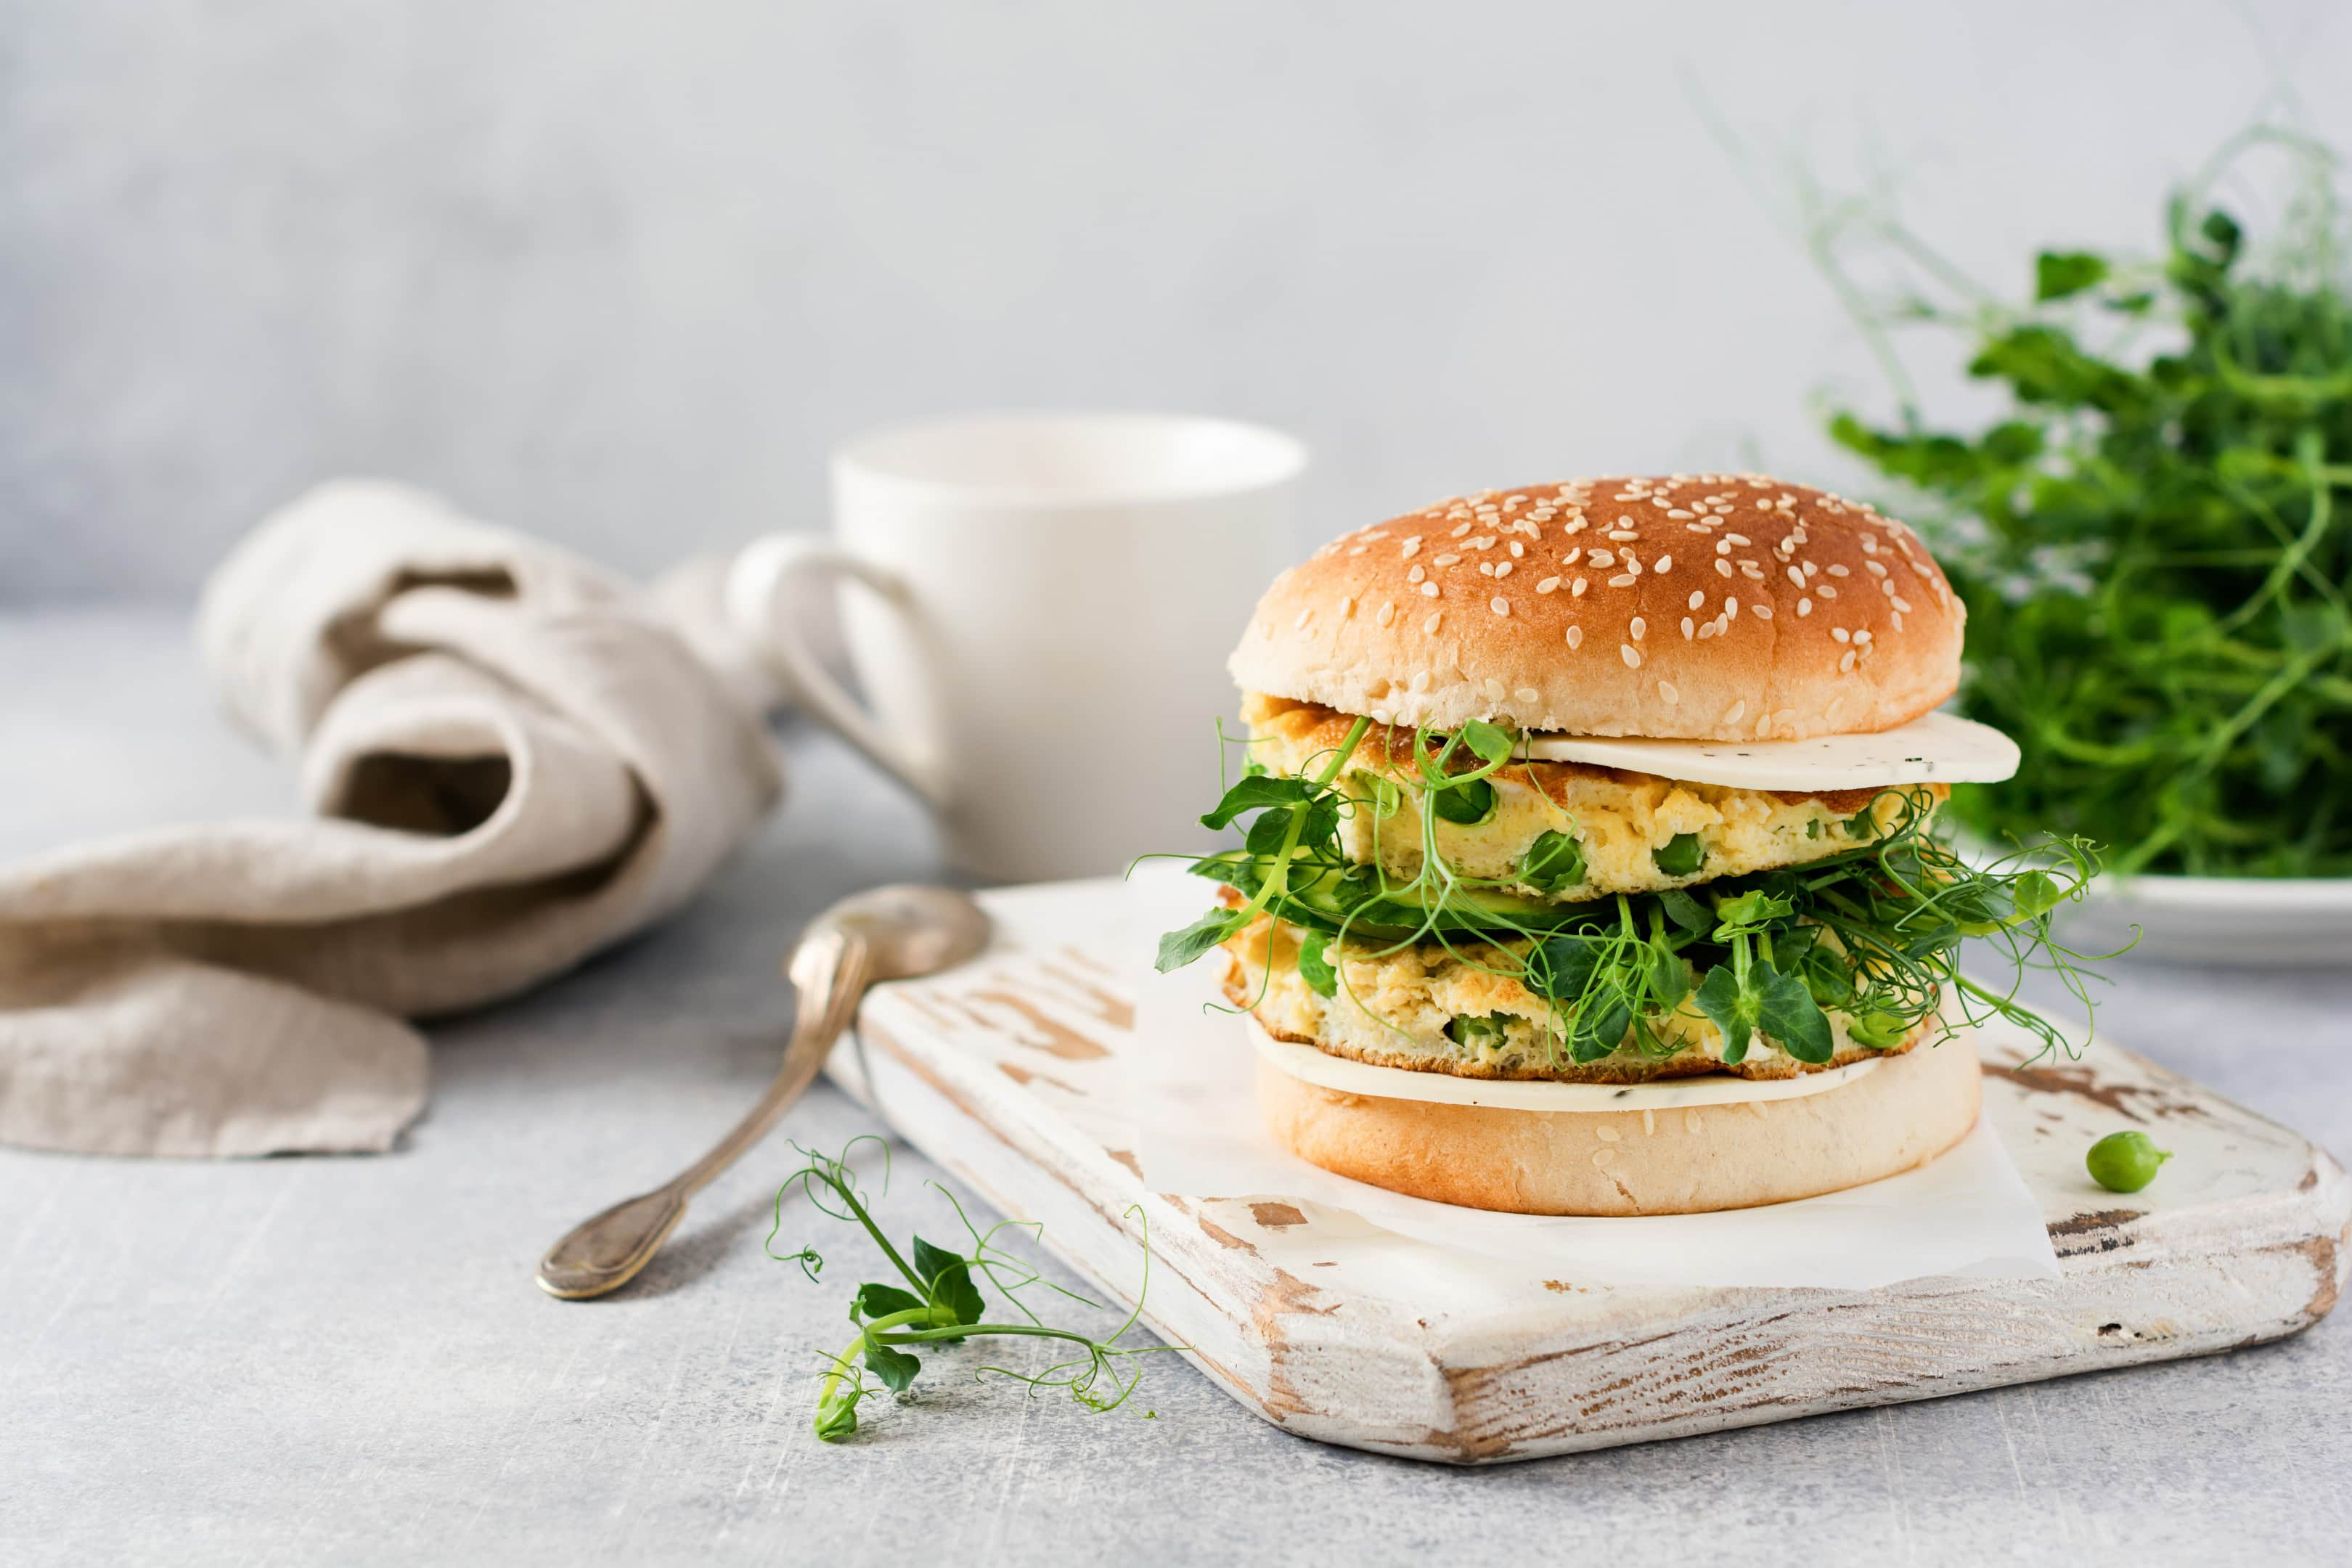 Vegetarian burger with egg and pea shoots on wooden cutting board